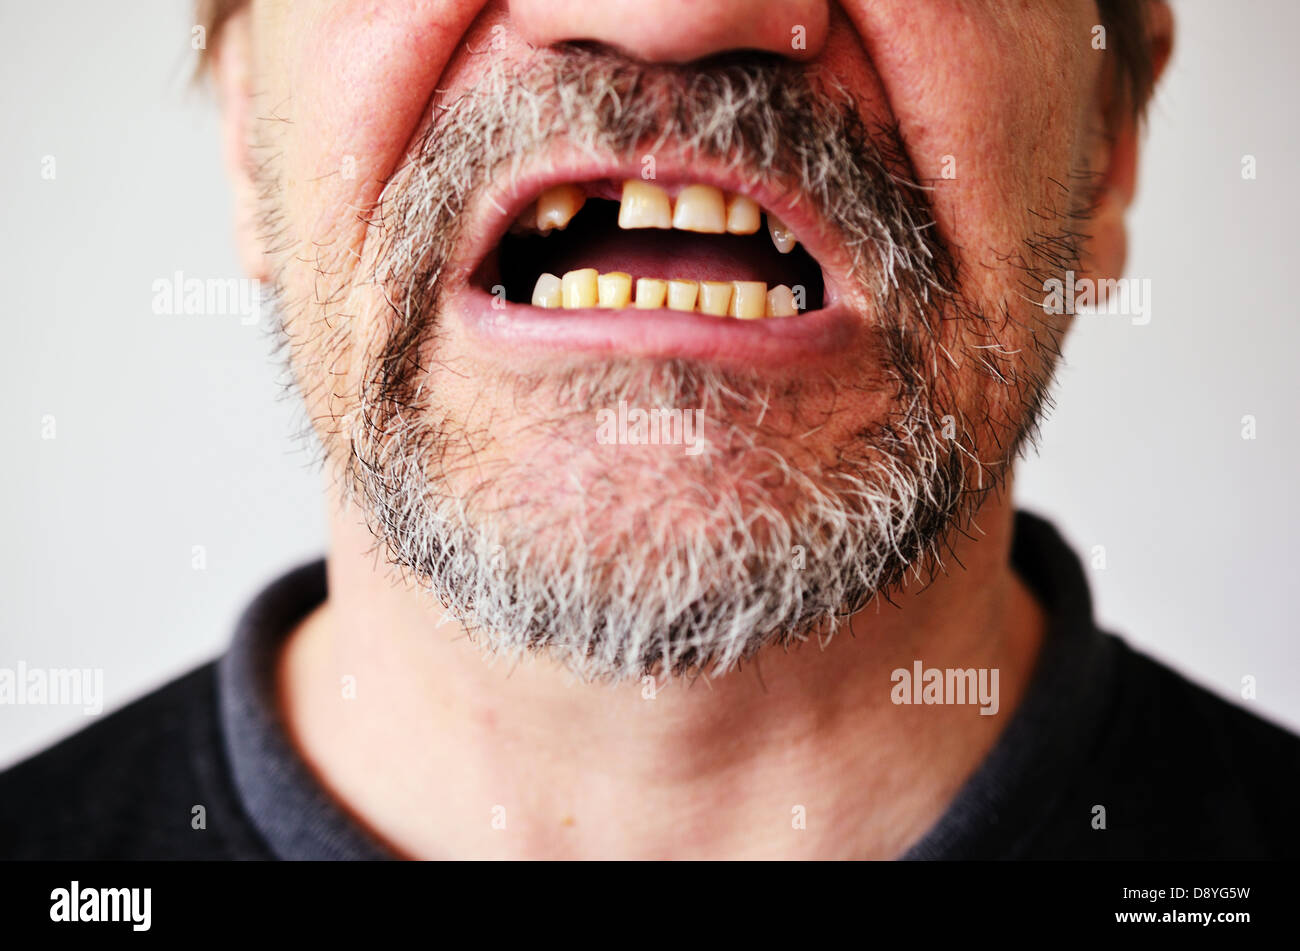 part of a man's face with an open toothless mouth - Stock Image